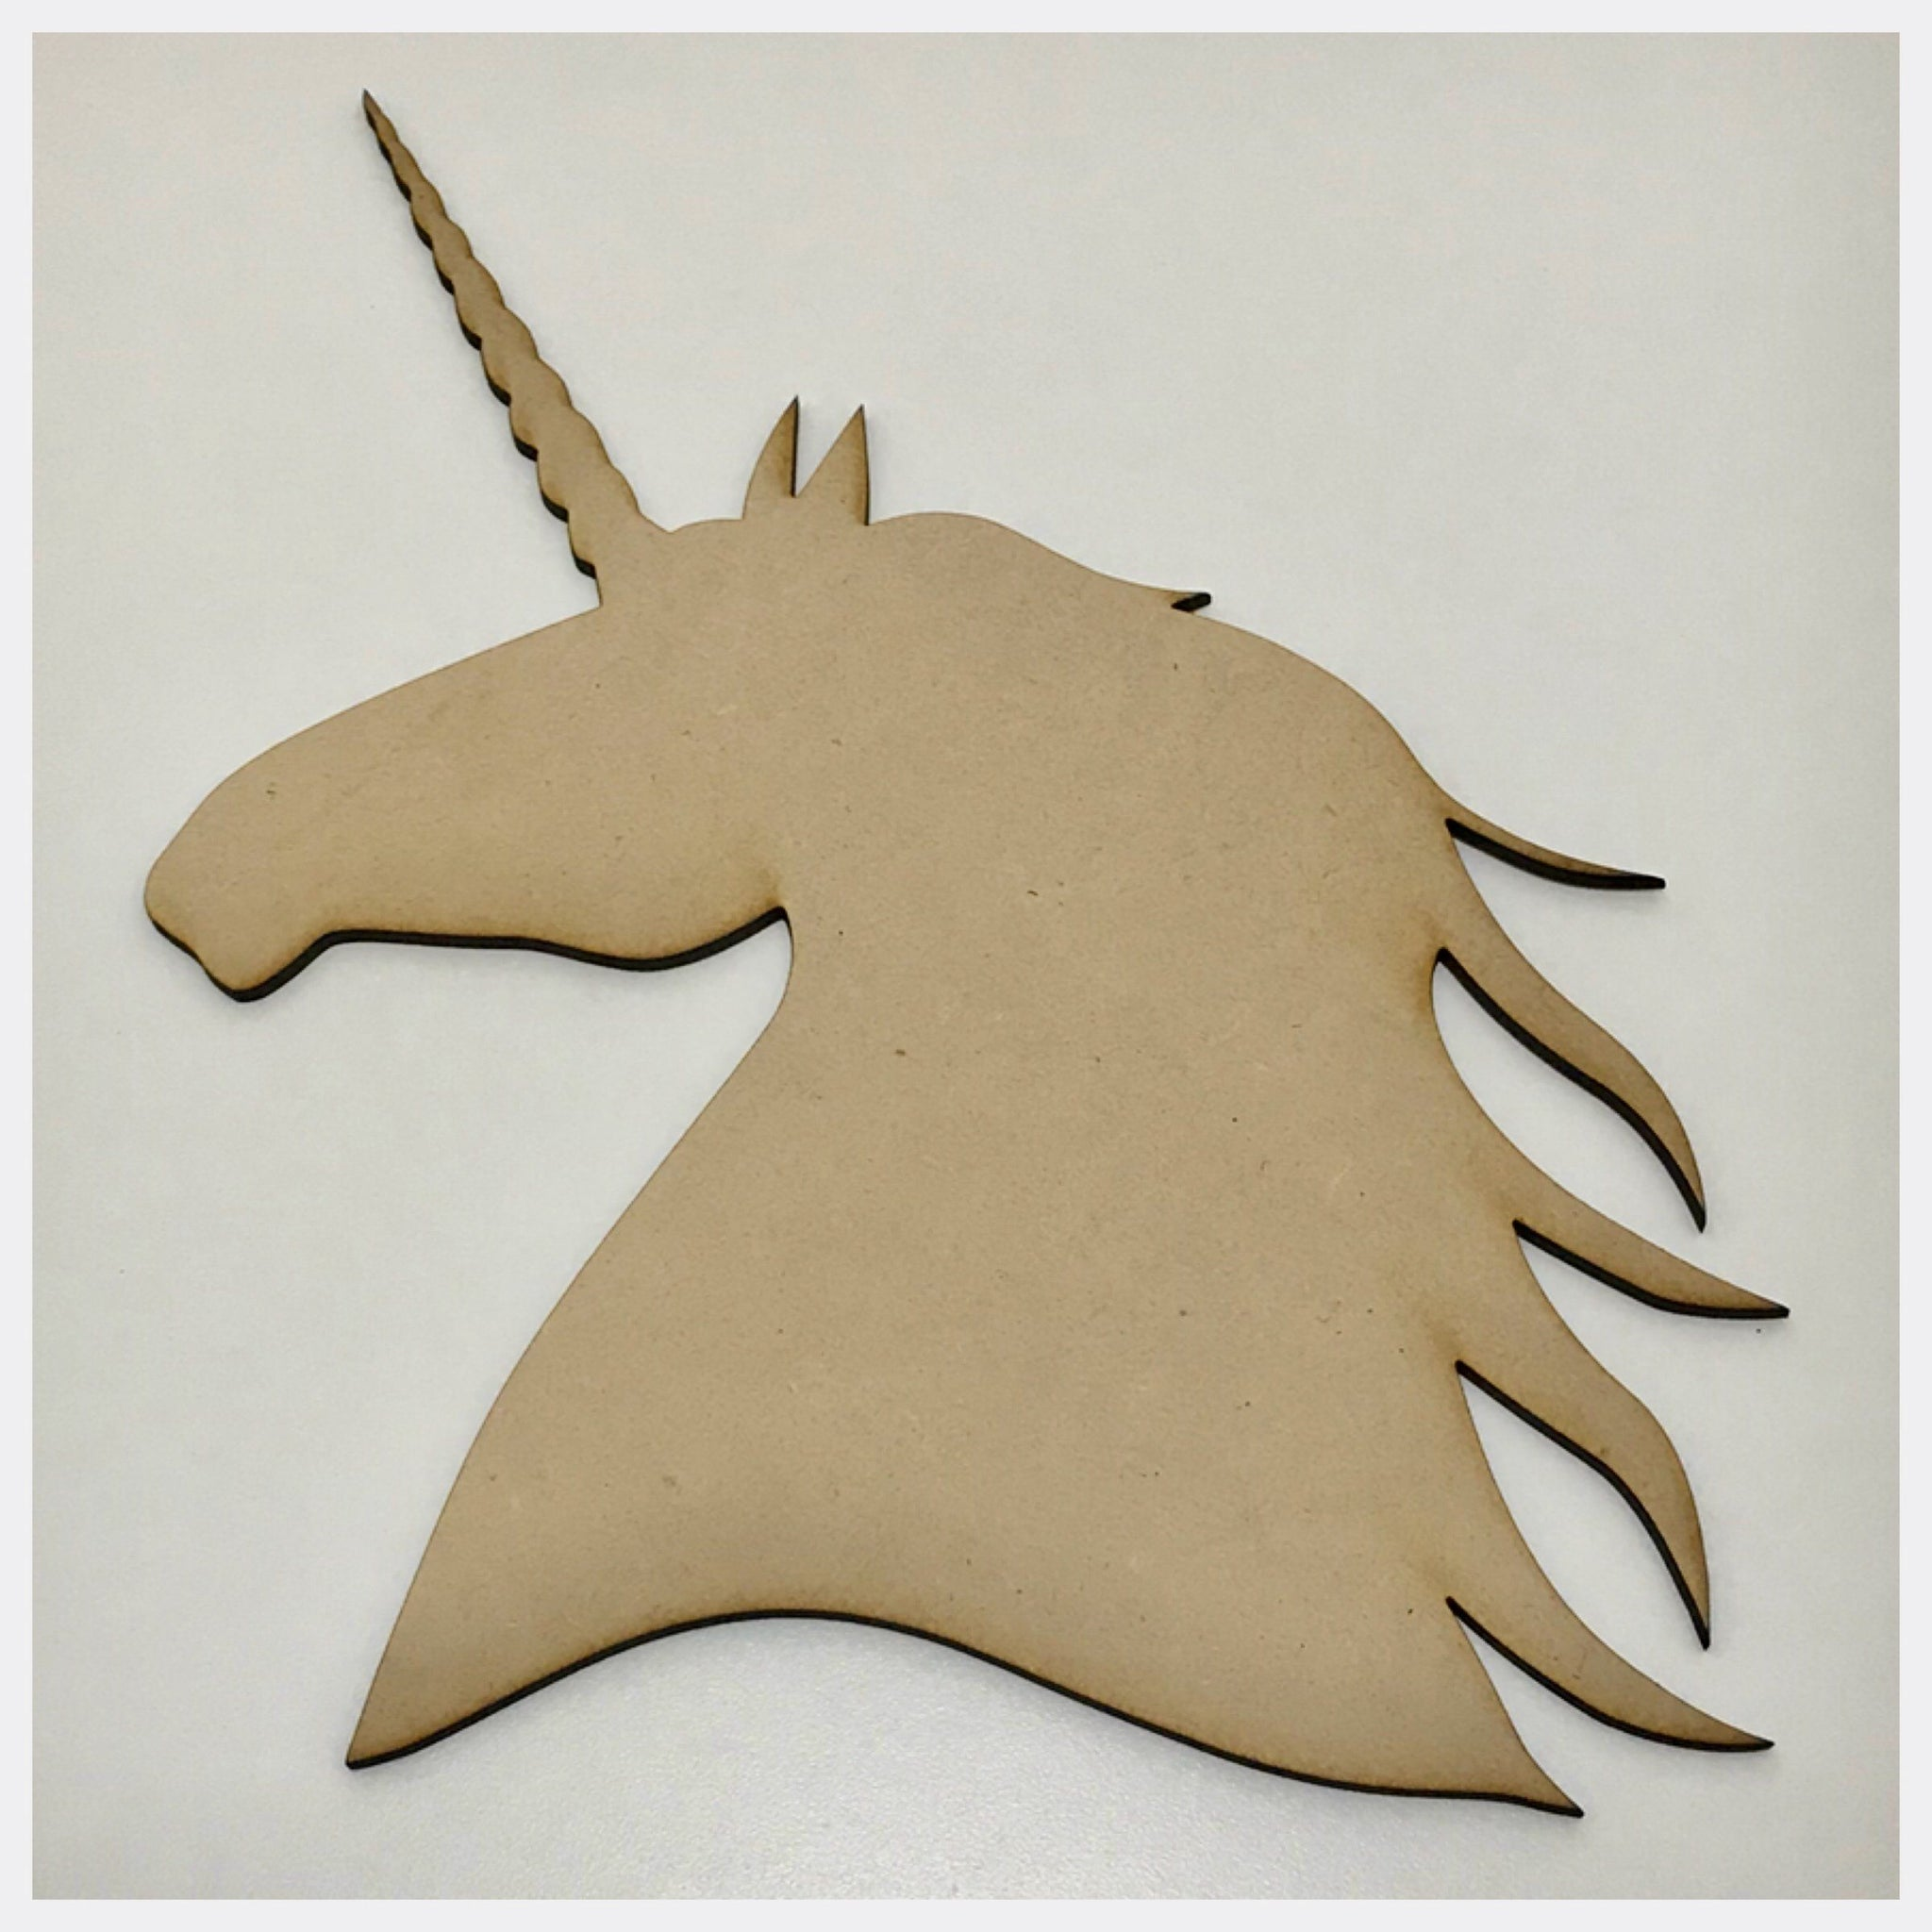 Unicorn Horse Head MDF Shape DIY Raw Cut Out Art Craft Decor